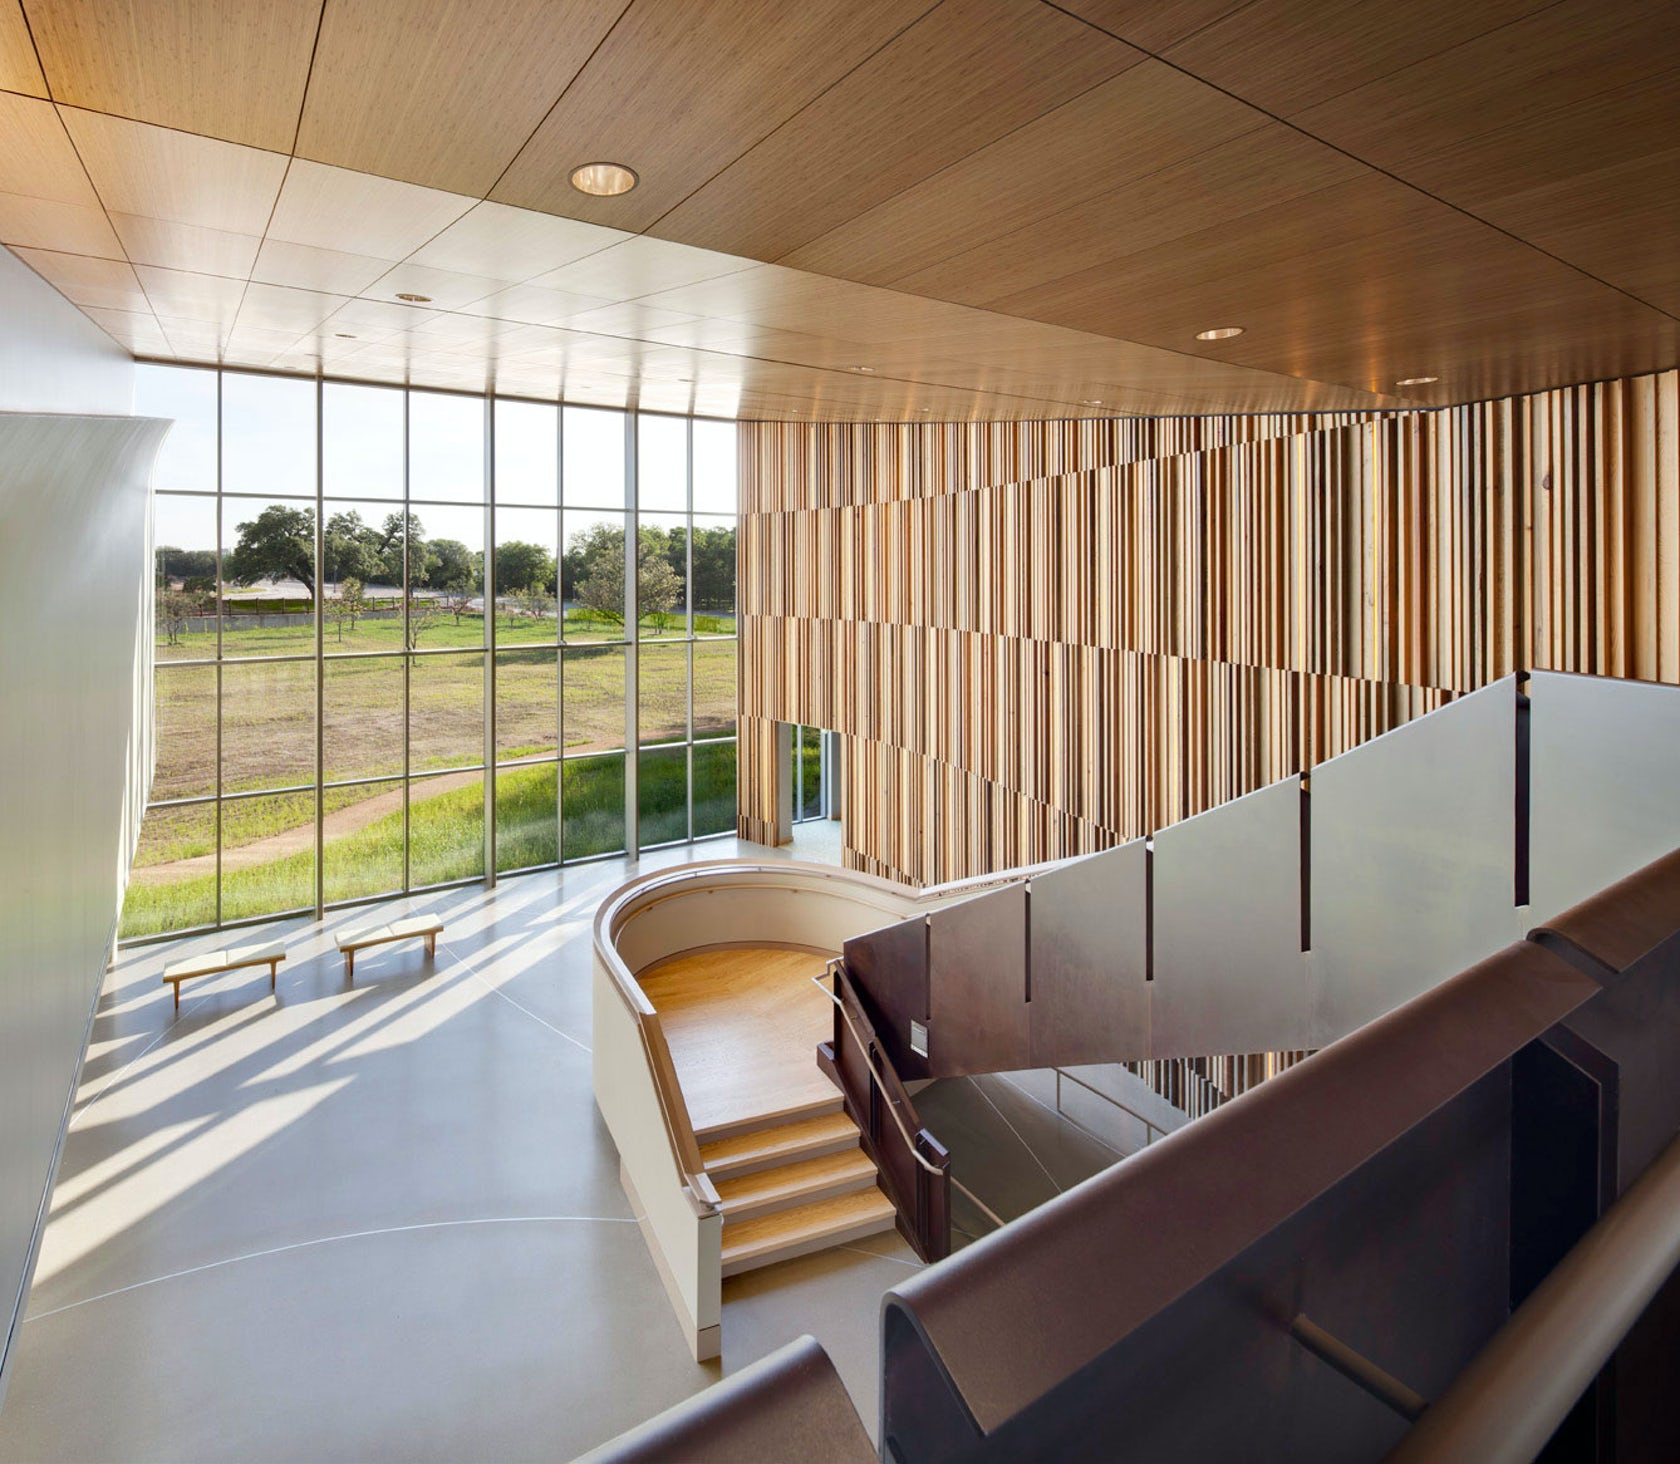 H3 hardy collaboration architecture llc architizer - Garden state healthcare associates ...